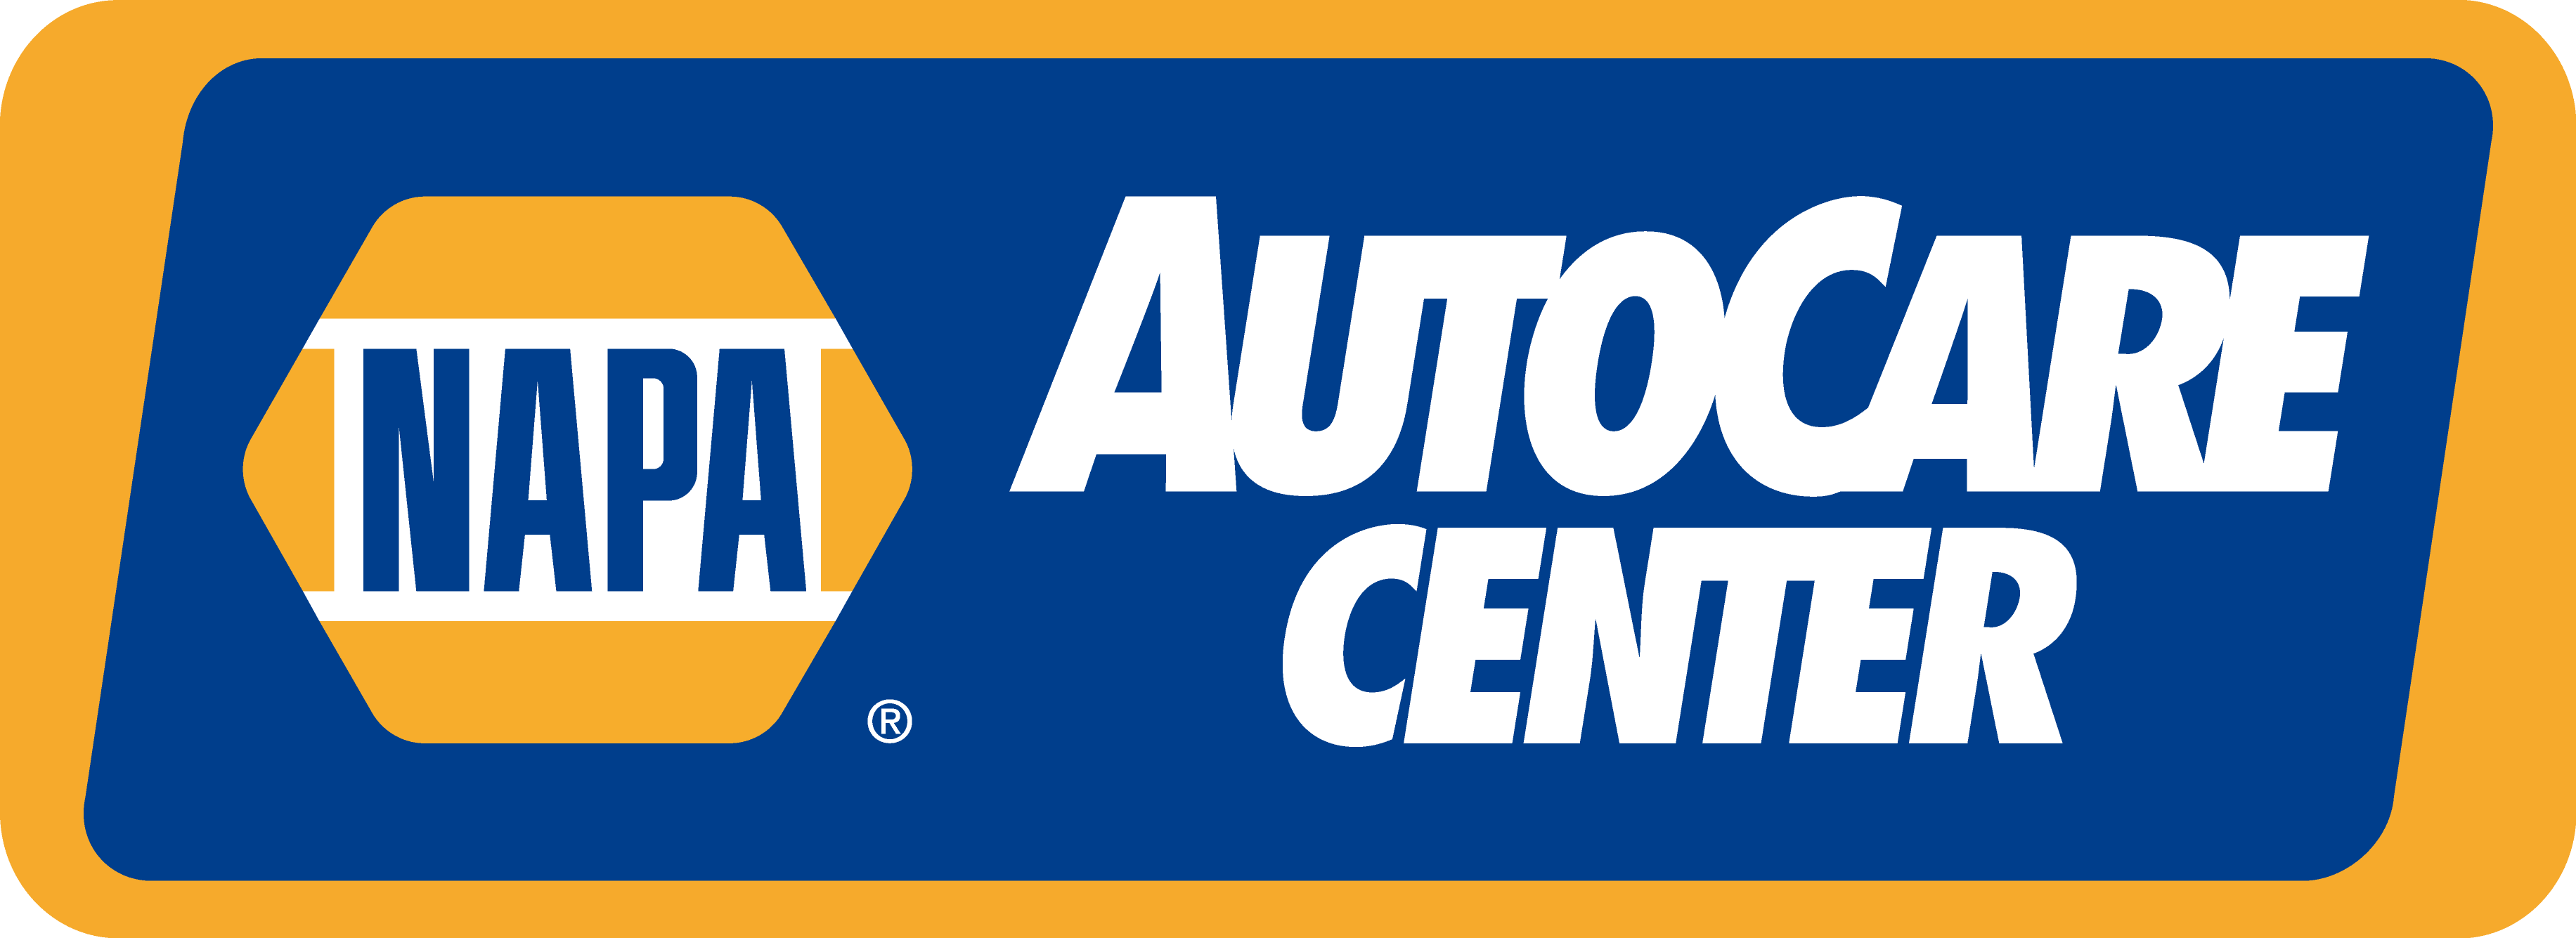 NAPA Auto Care Center, Sterling Automotive Repair, Aurora, IL, 60504